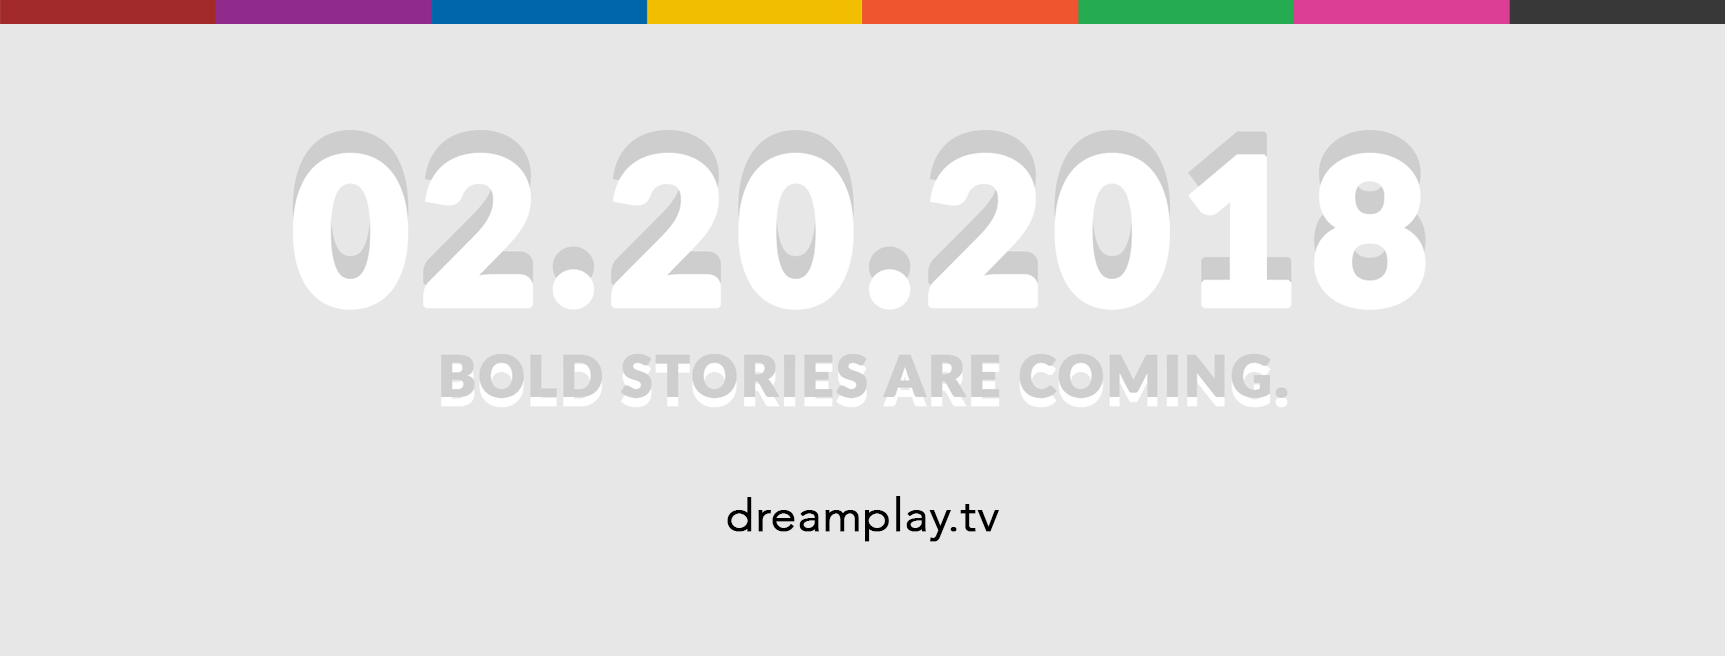 dreamplay tv, date, beta launch